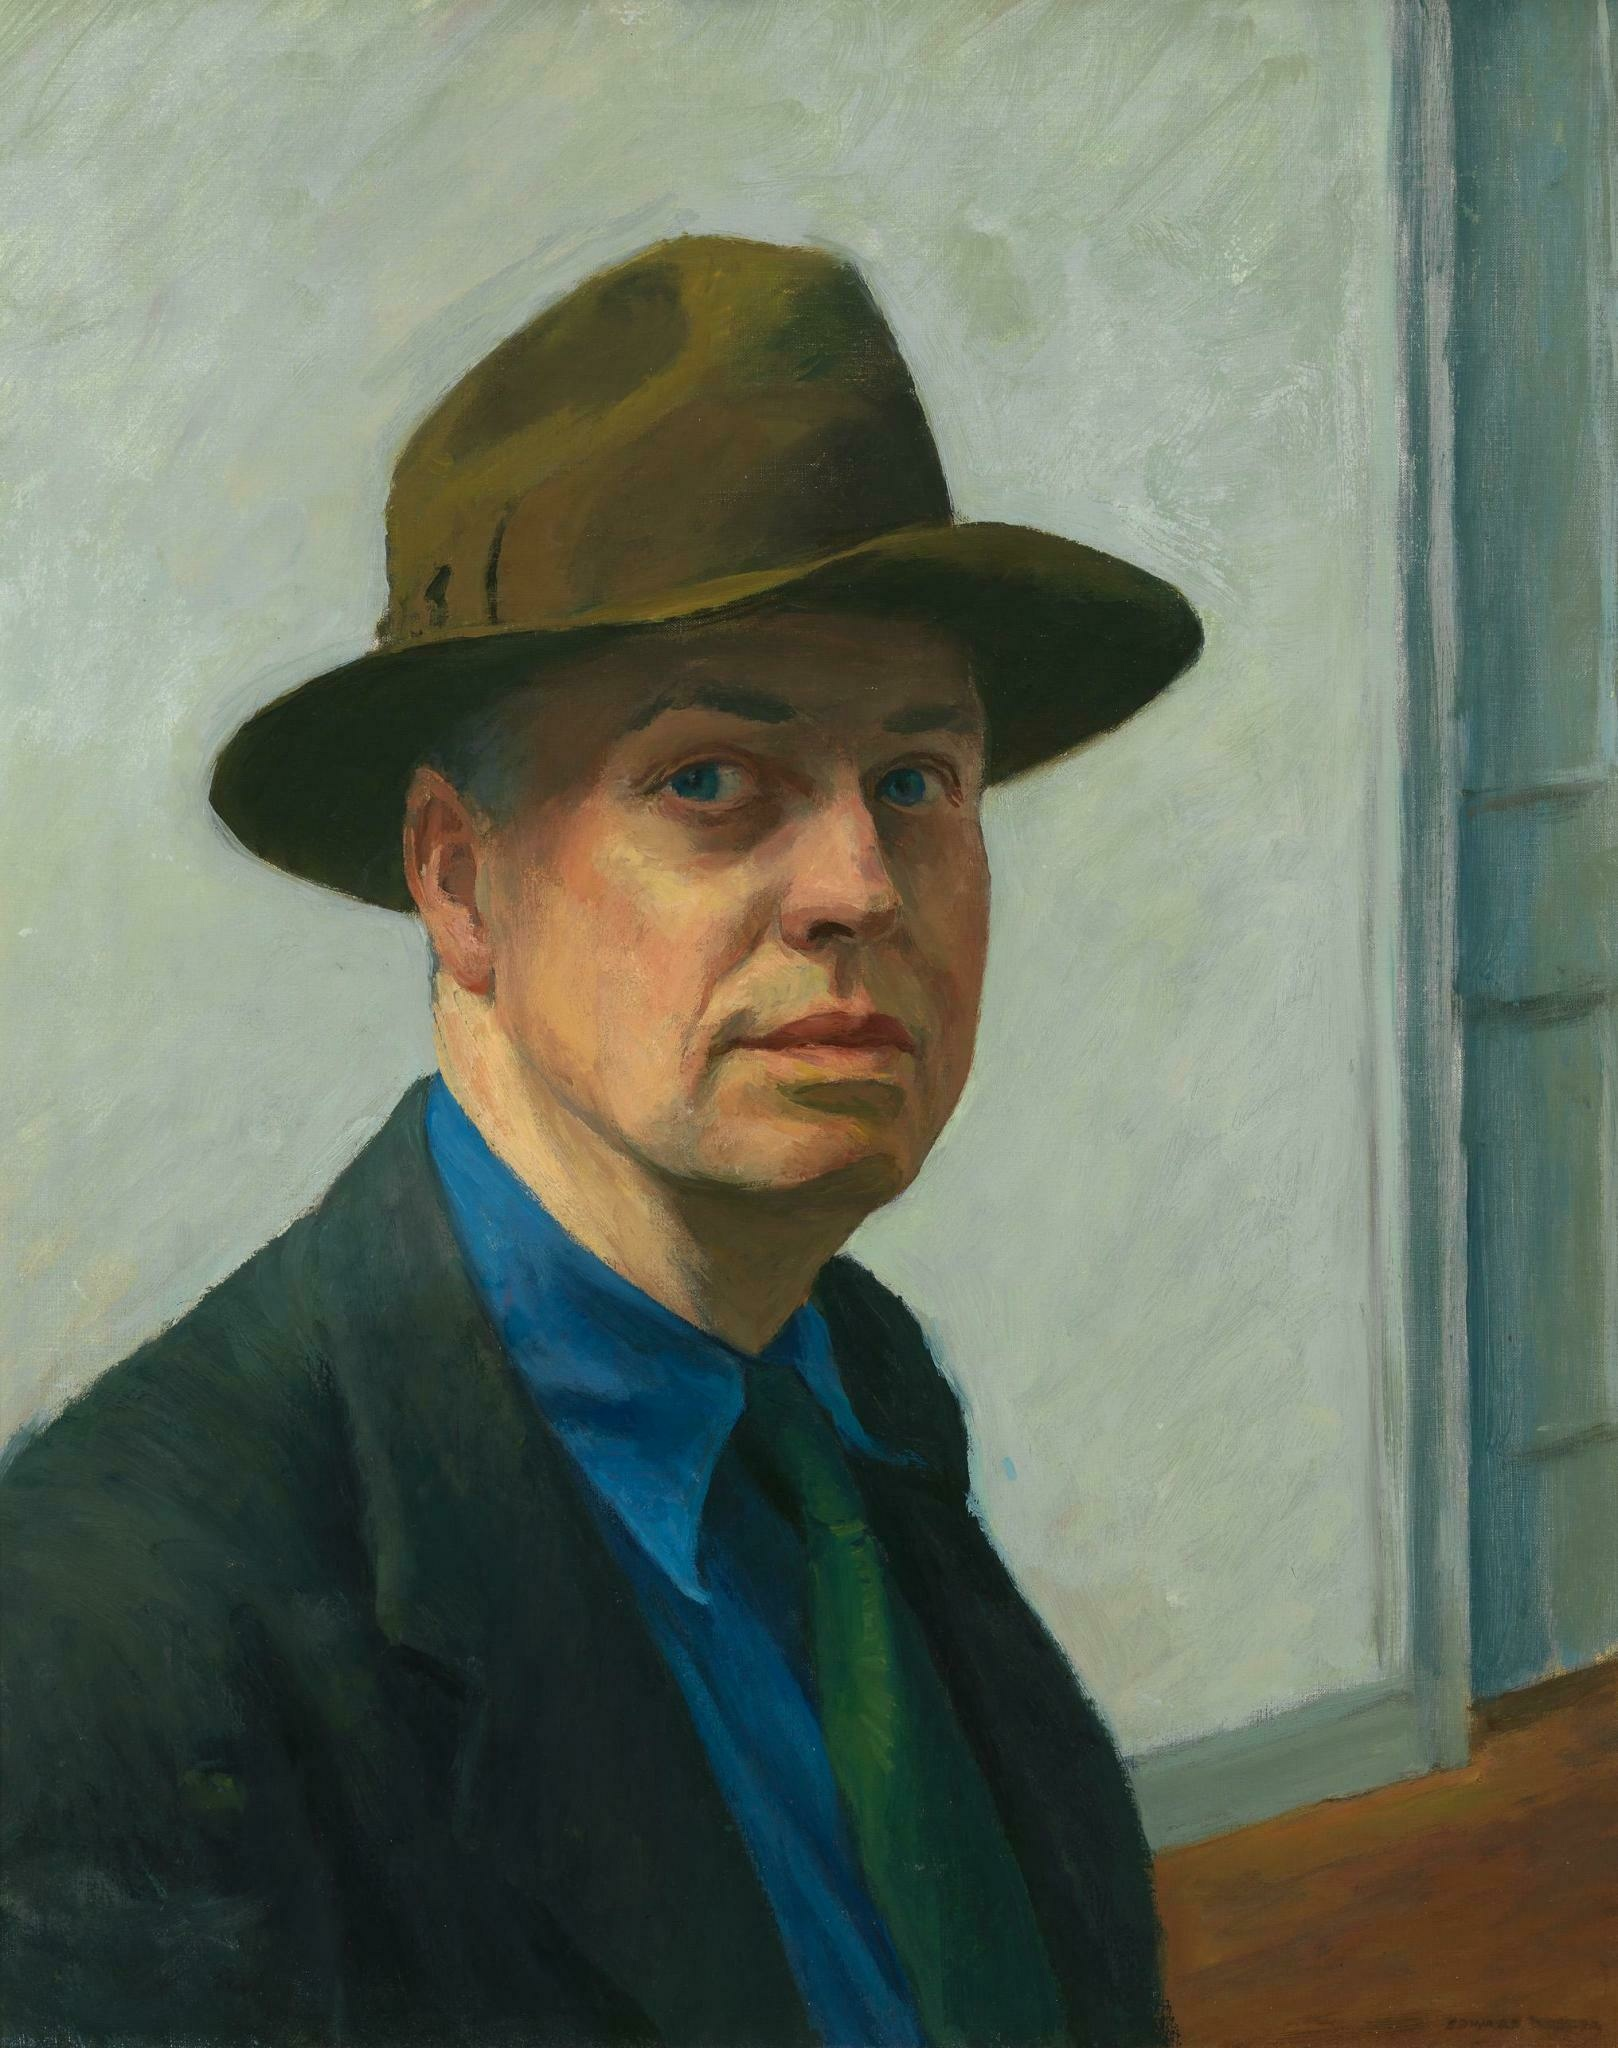 A white man stares at us in a fedora, jacket, tie, and bright blue shirt that matches the color of his eyes